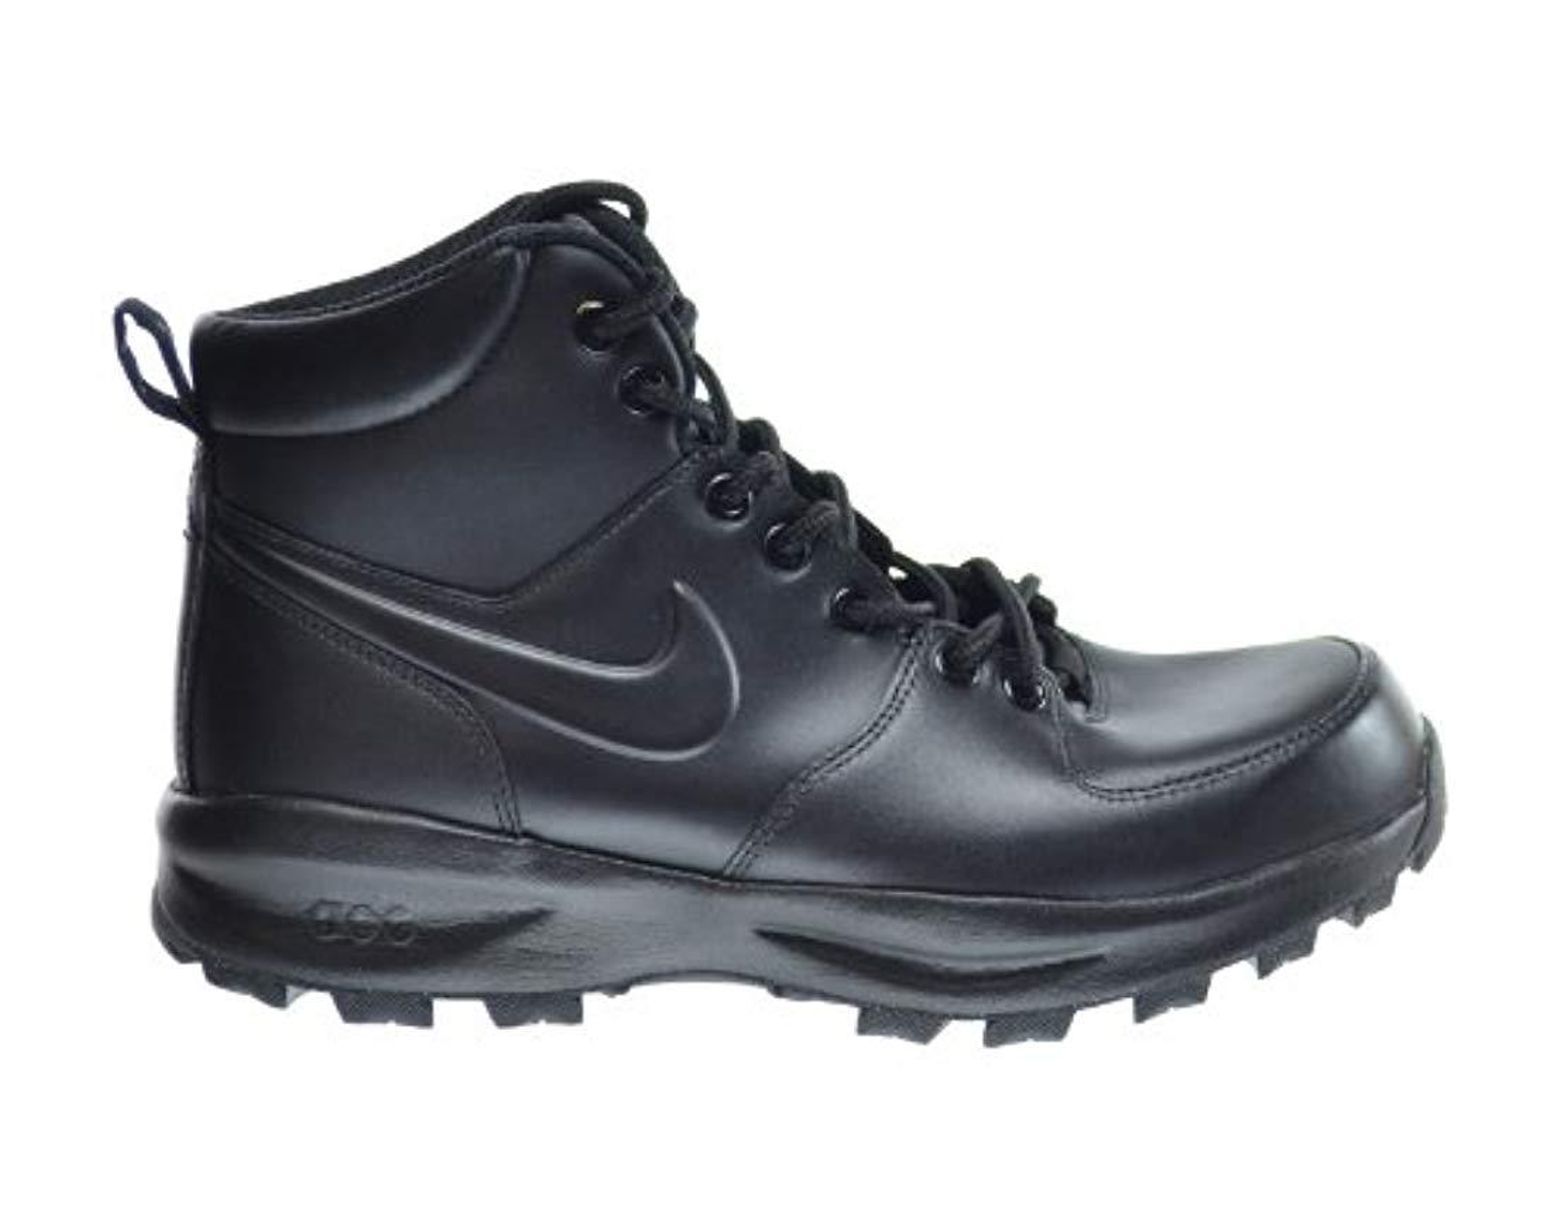 c393060fe8412 Nike 's 454350 700 Boots in Black for Men - Lyst